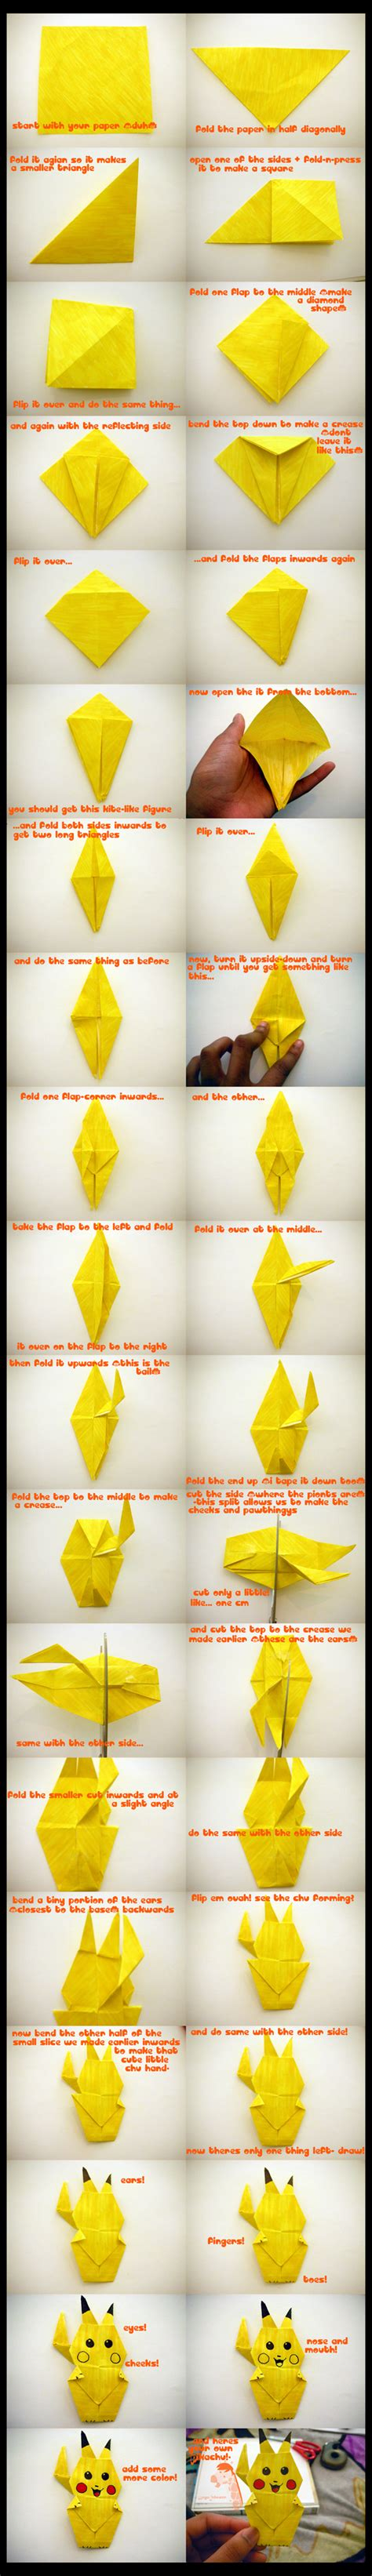 how to make an origami pikachu infographic images